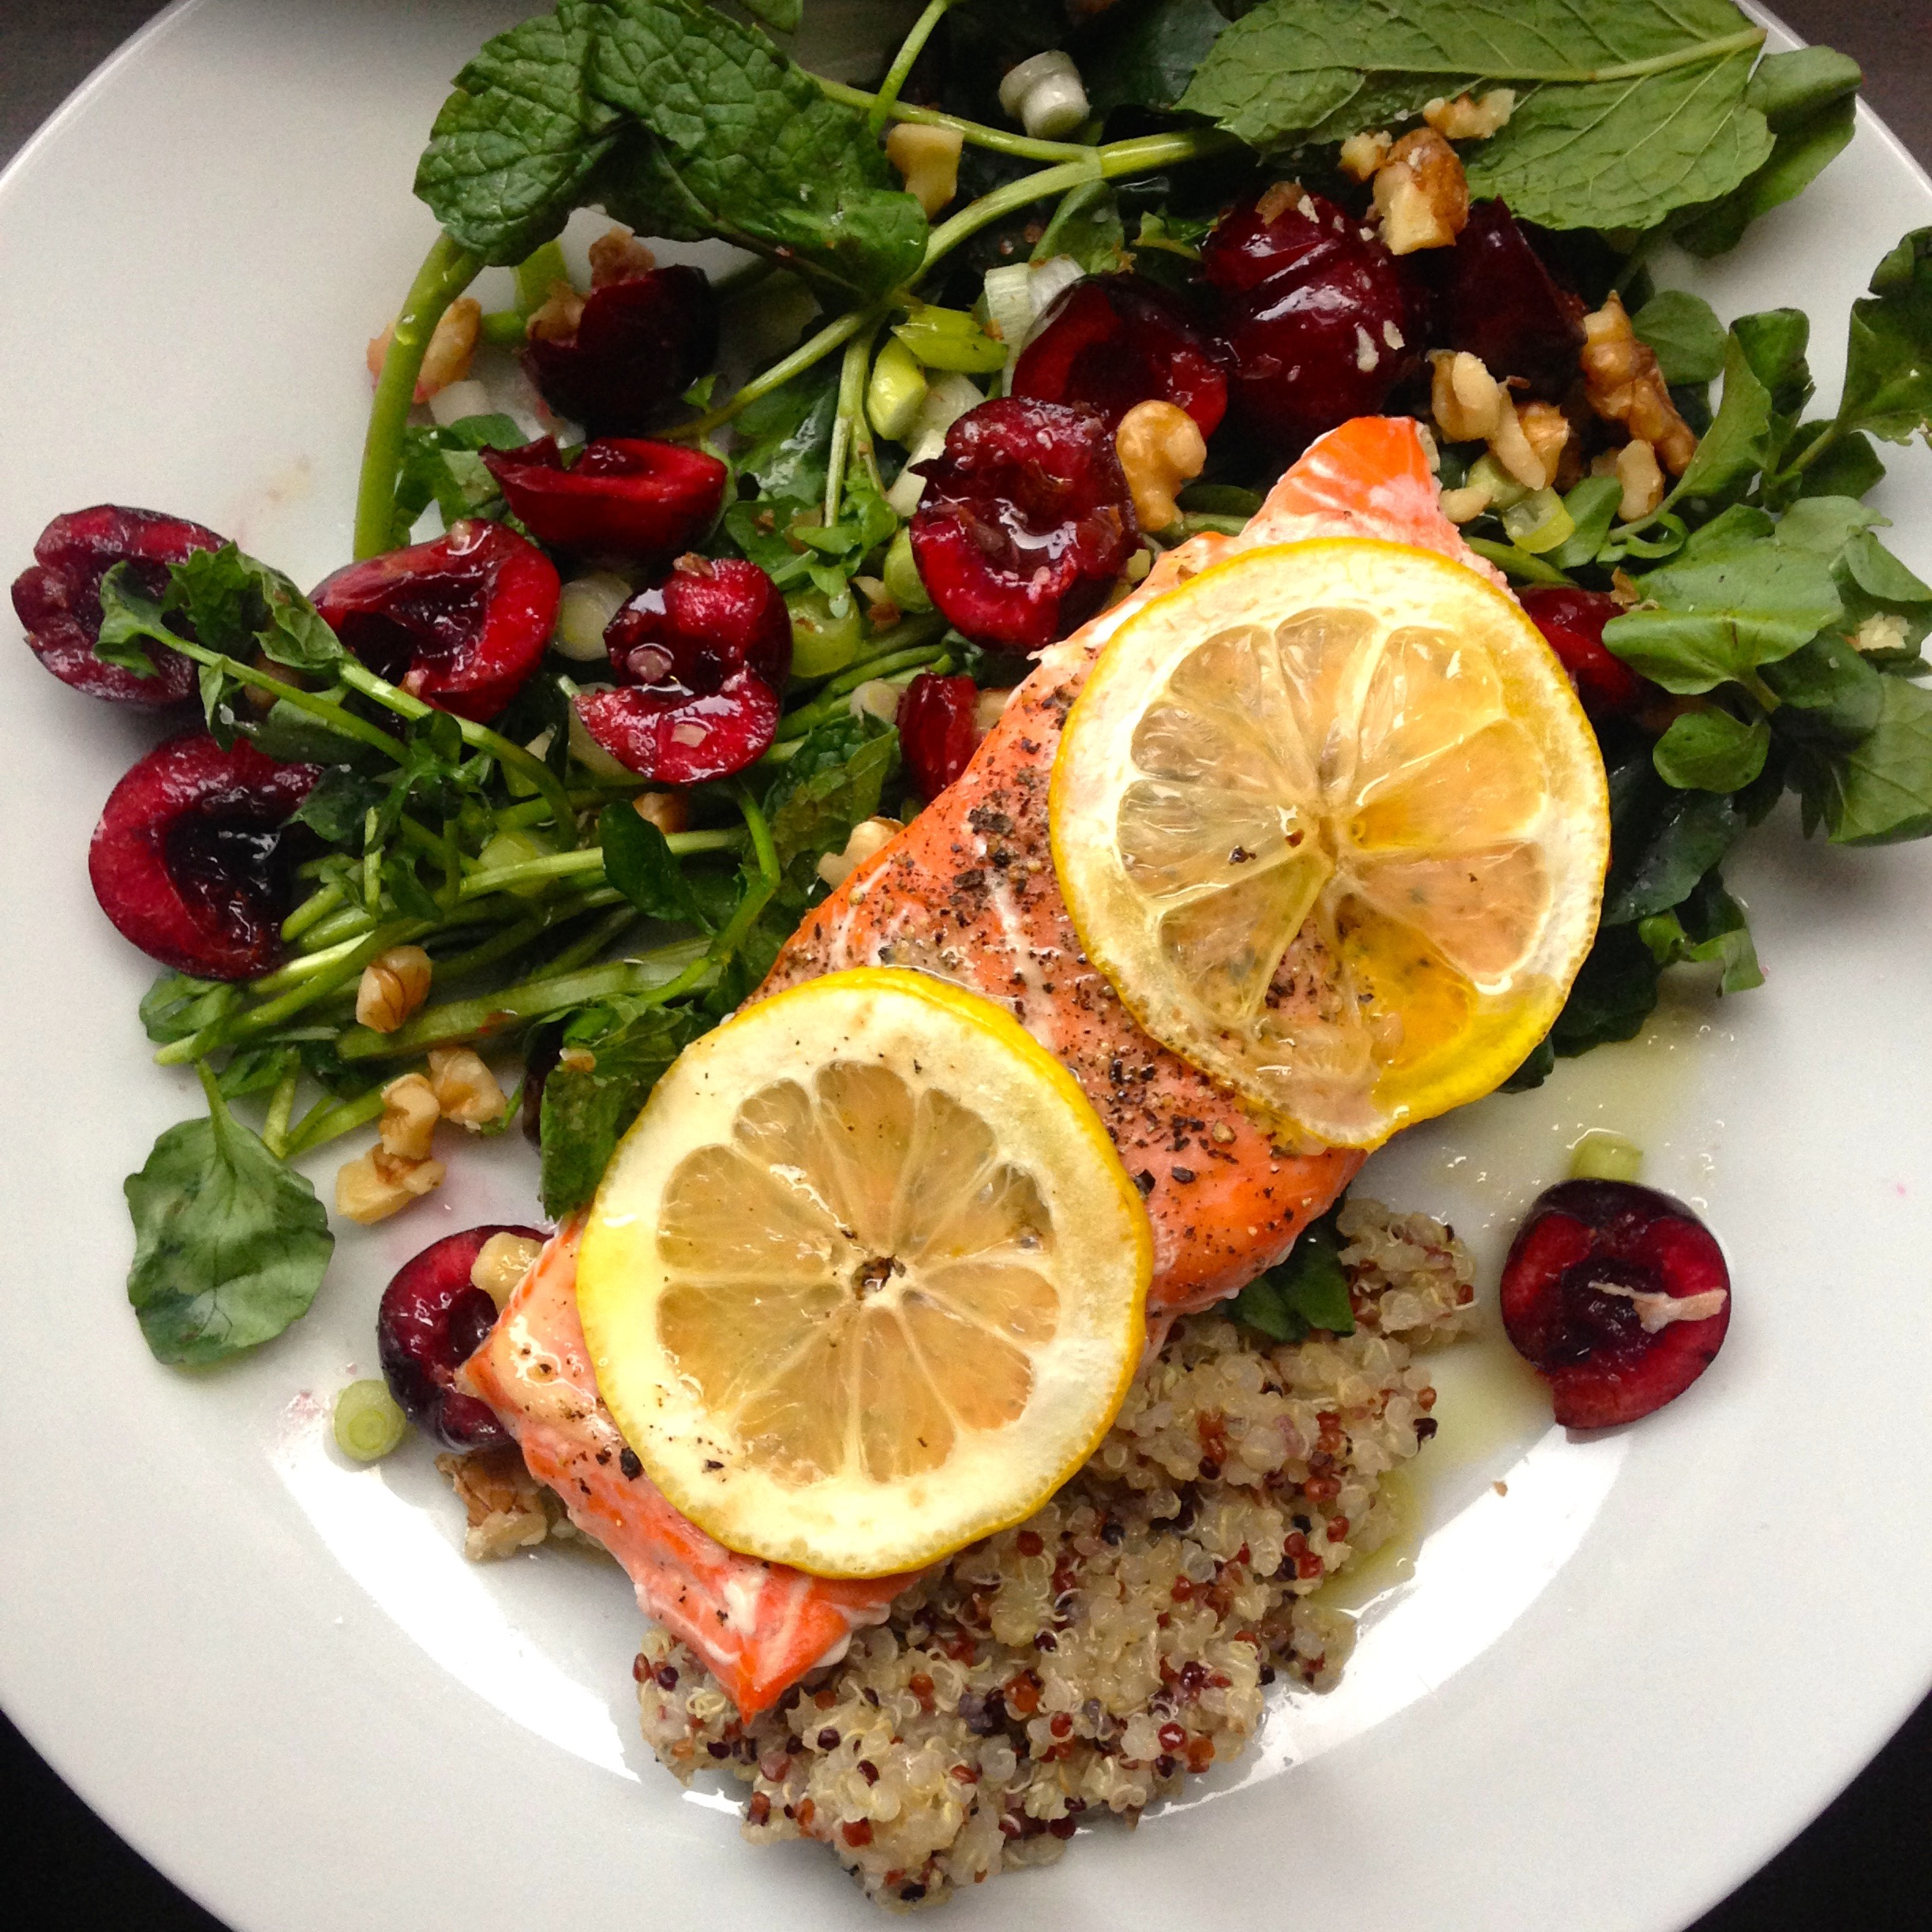 baked salmon with watercress + cherry salad